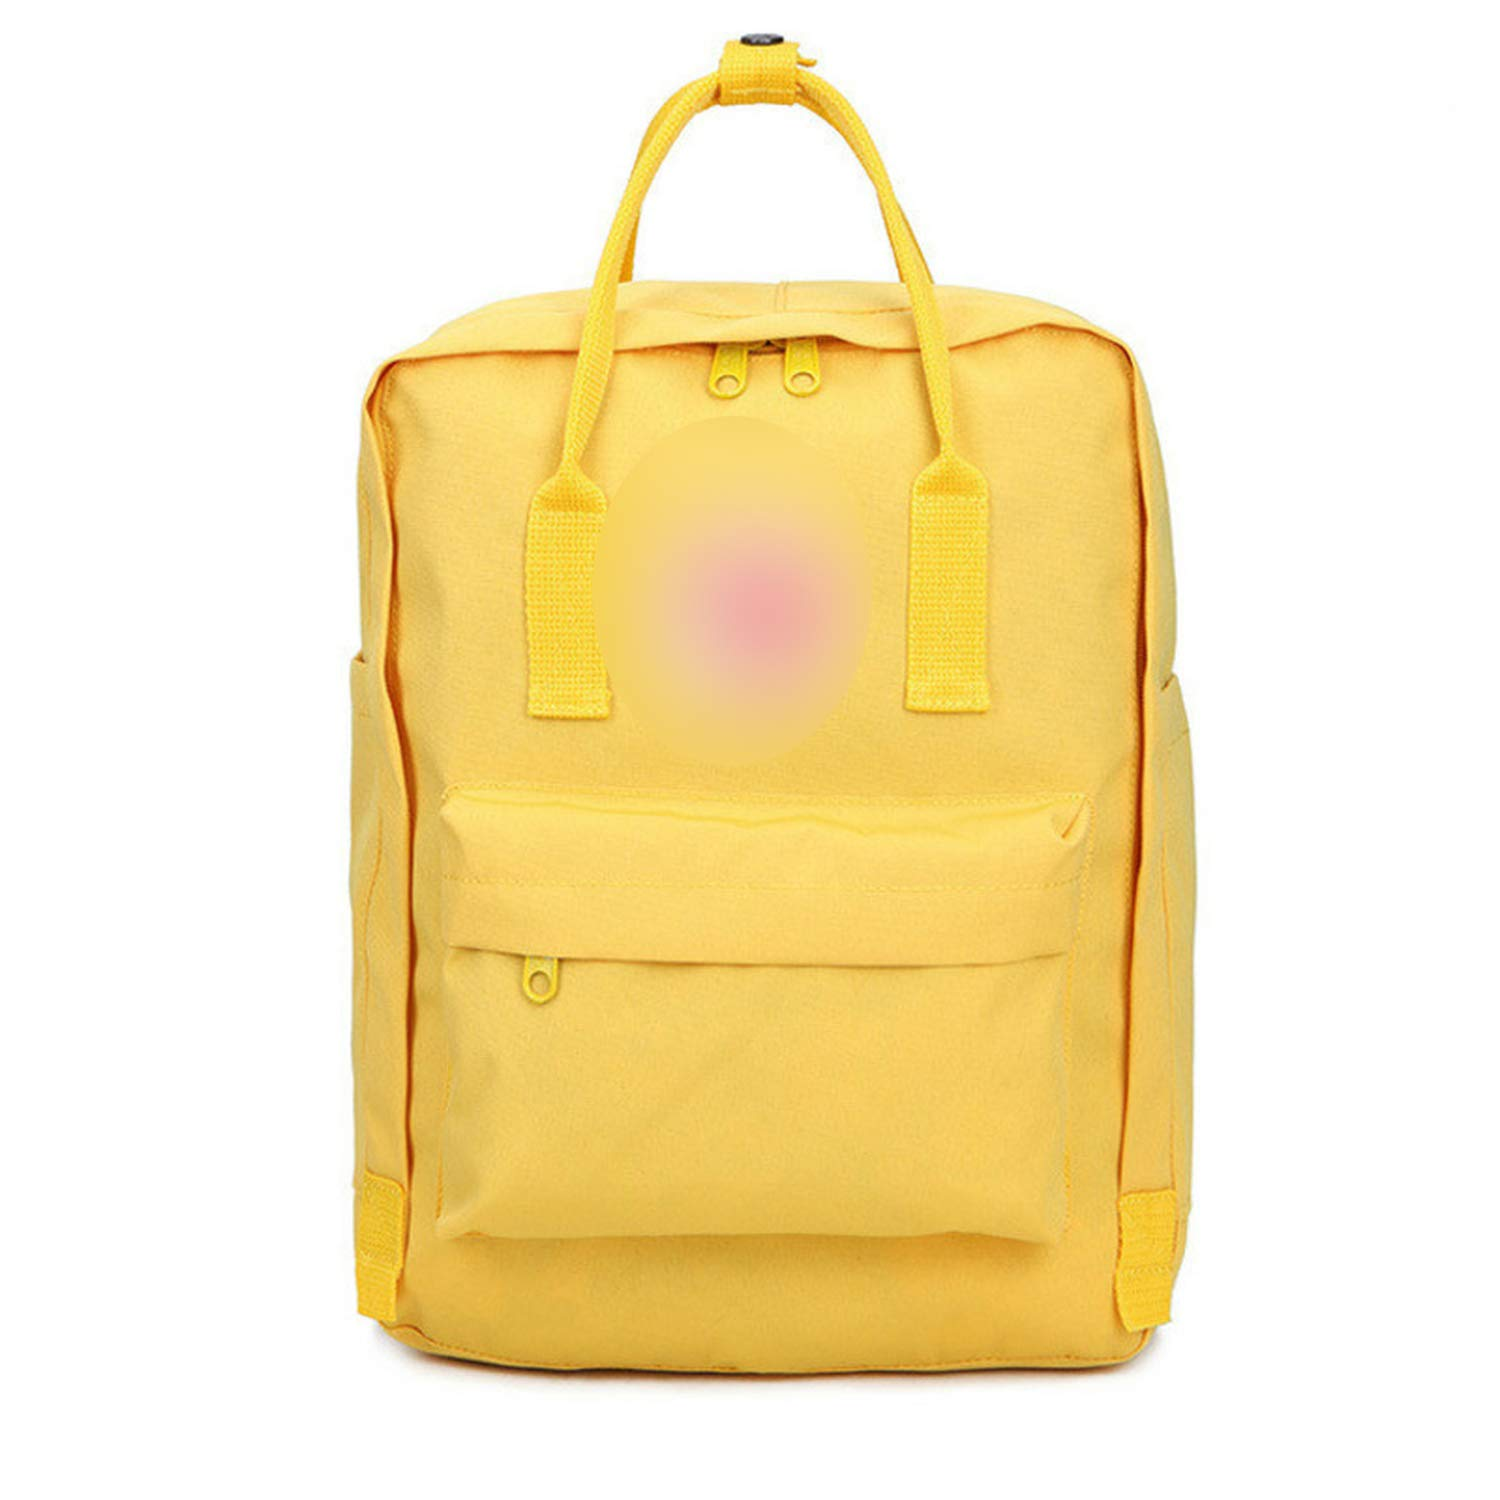 Amazon.com: Classic Mini Backpack Arrival Children Waterproof Back Packs For Student School Bags,Yellow,16L: Shoes